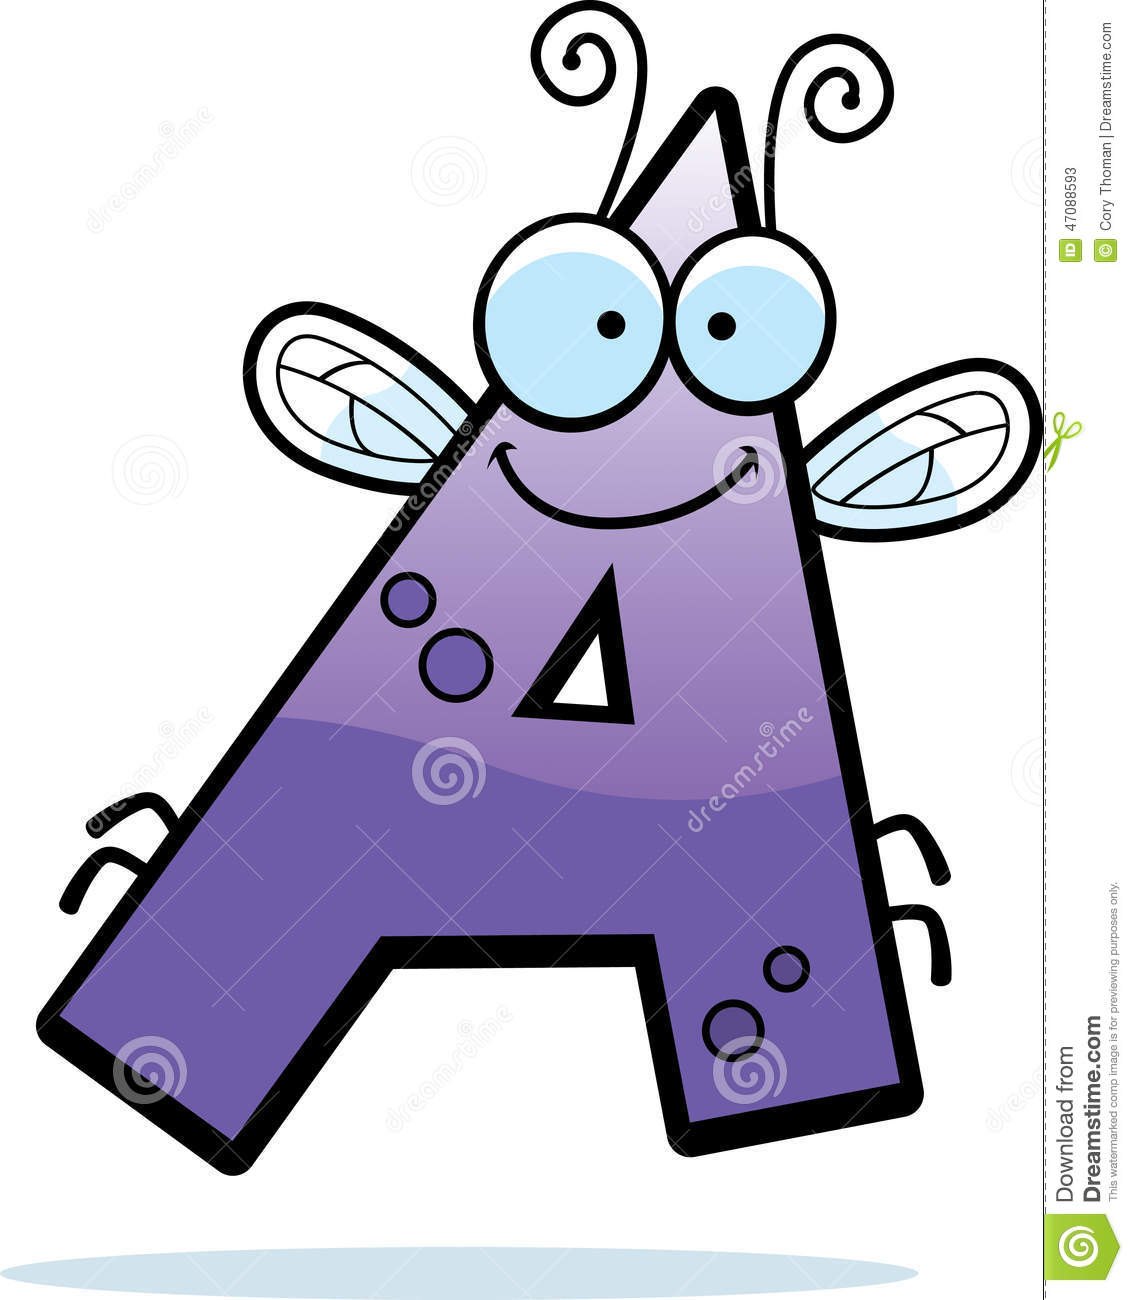 Cartoon Characters 9 Letters : Cartoon letter a bug stock vector illustration of clip